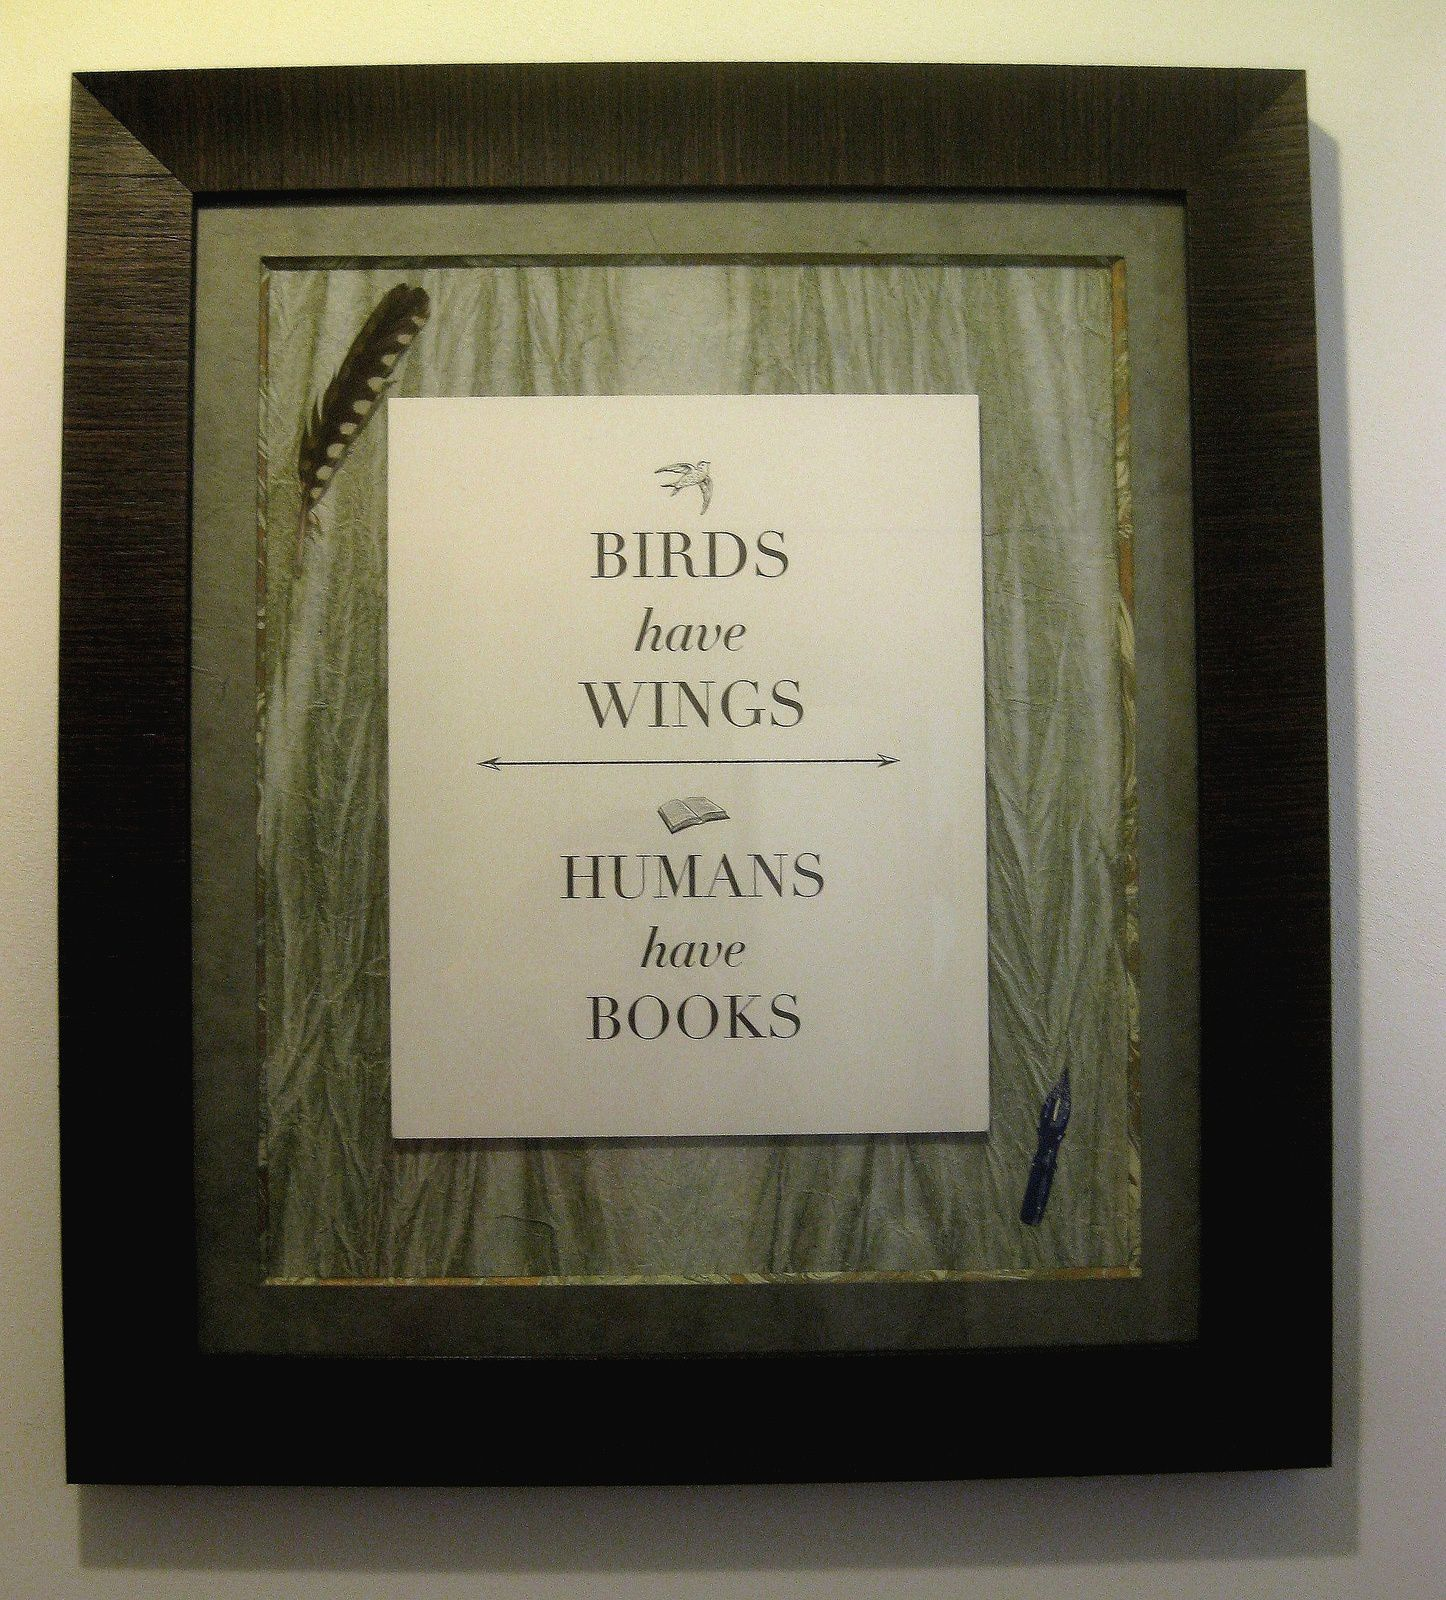 Birds have wings, Humans have books...